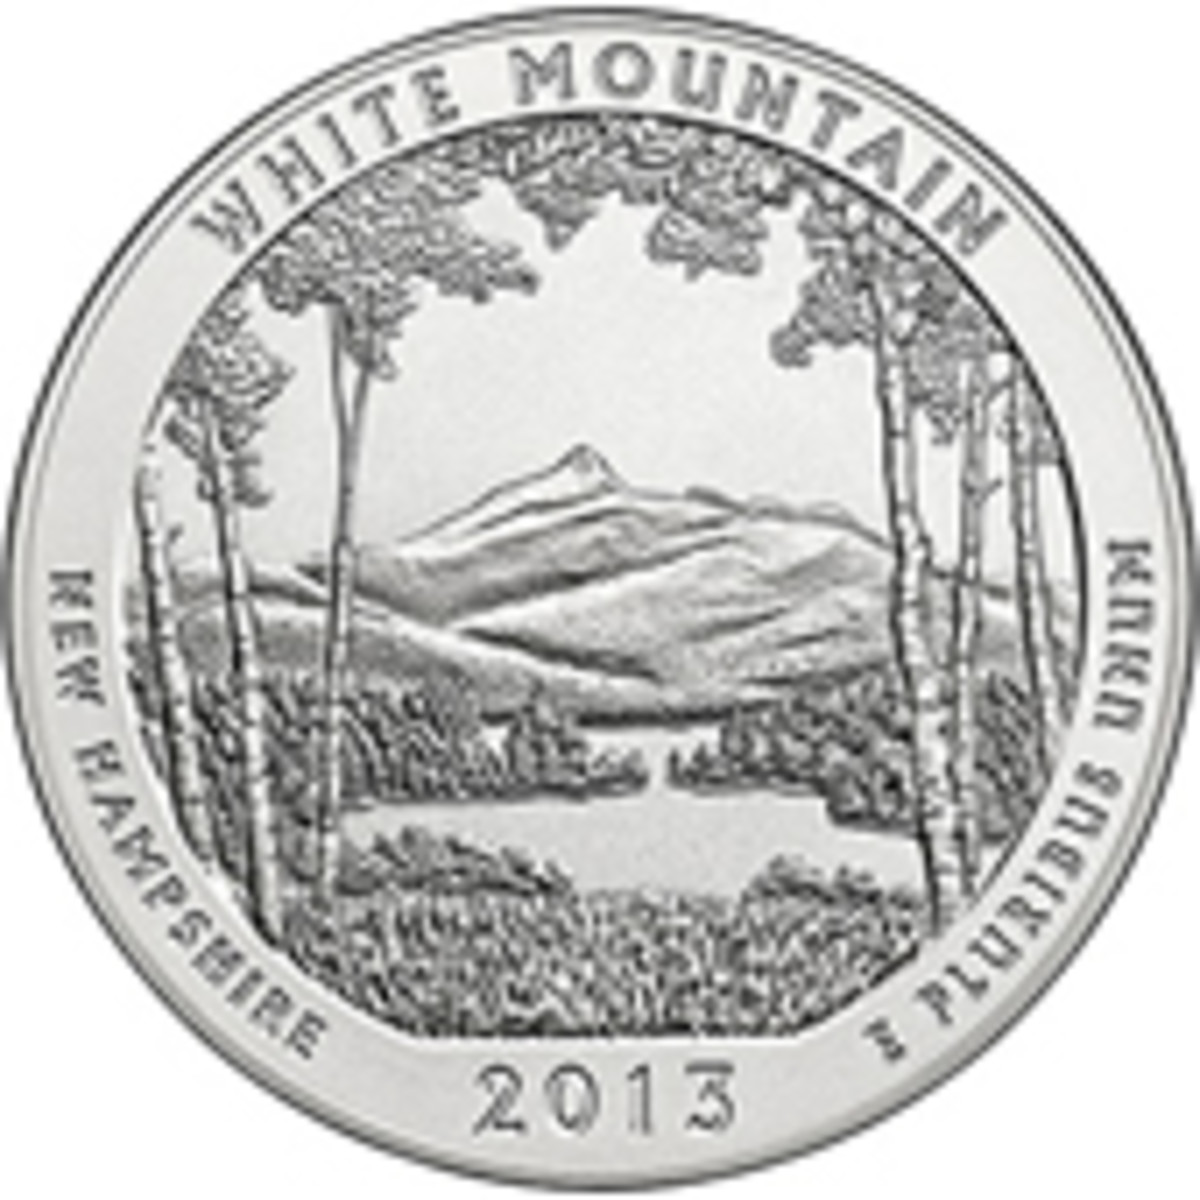 WhiteMountain